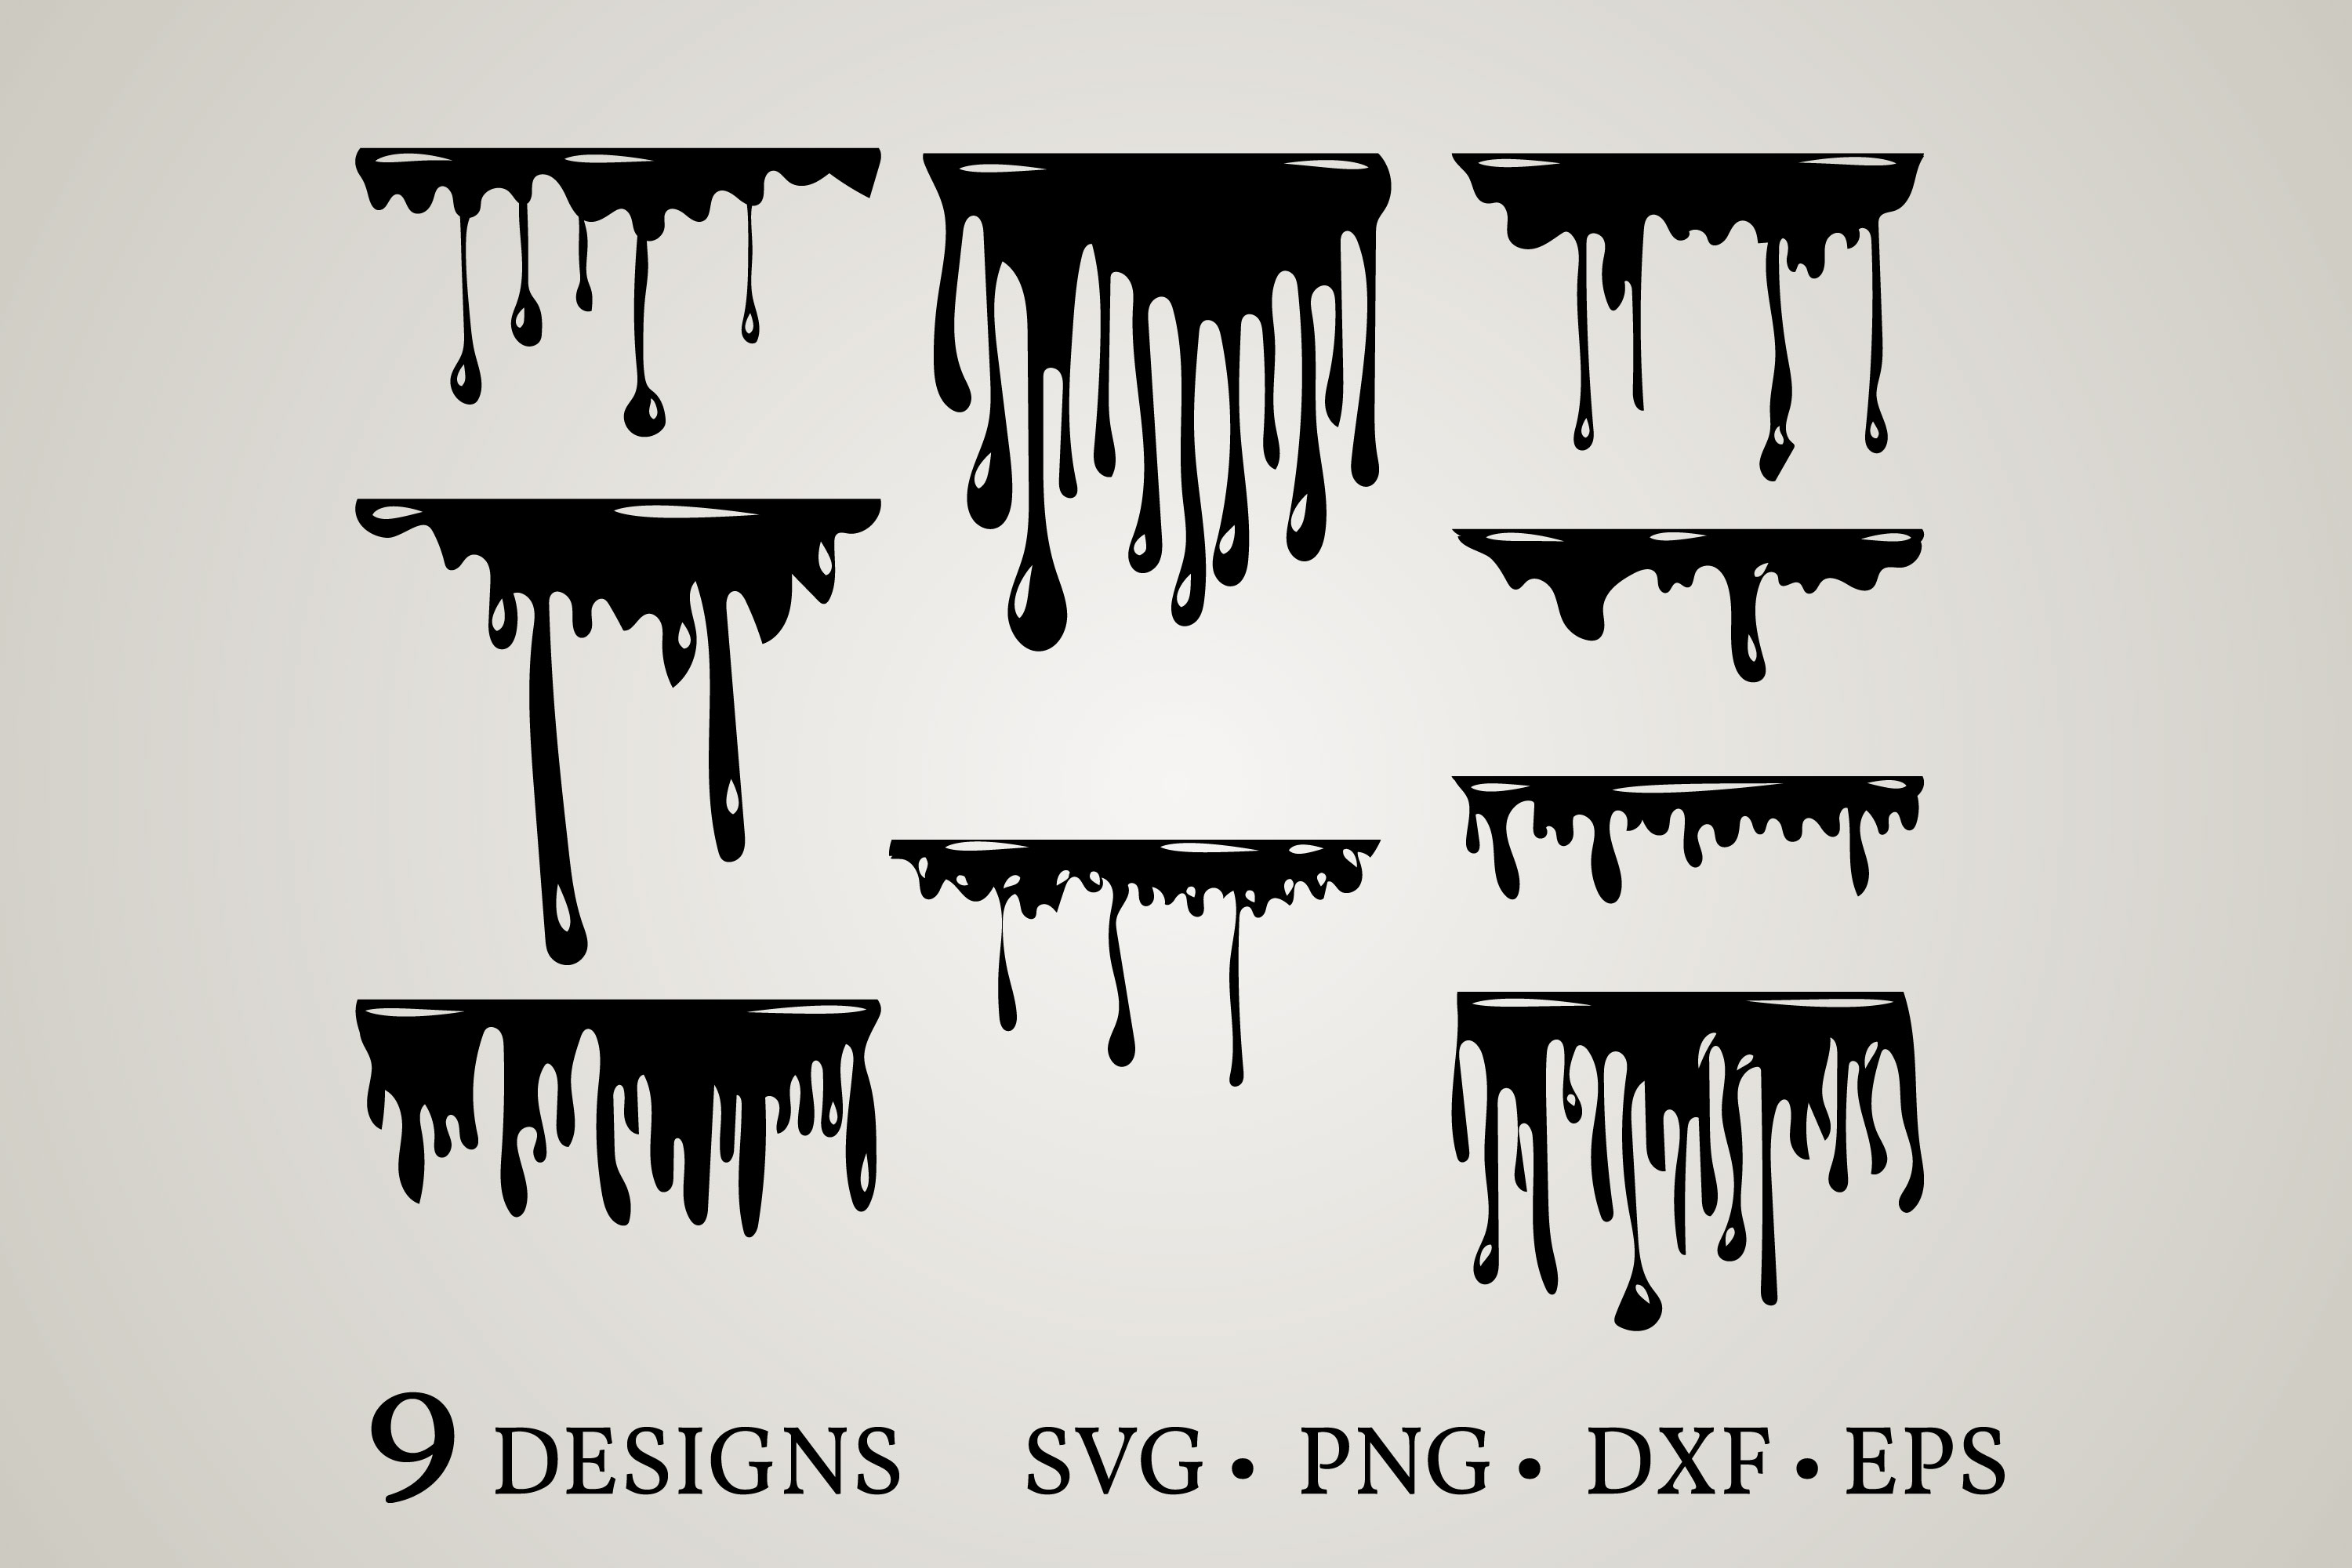 Dripping Borders SVG File